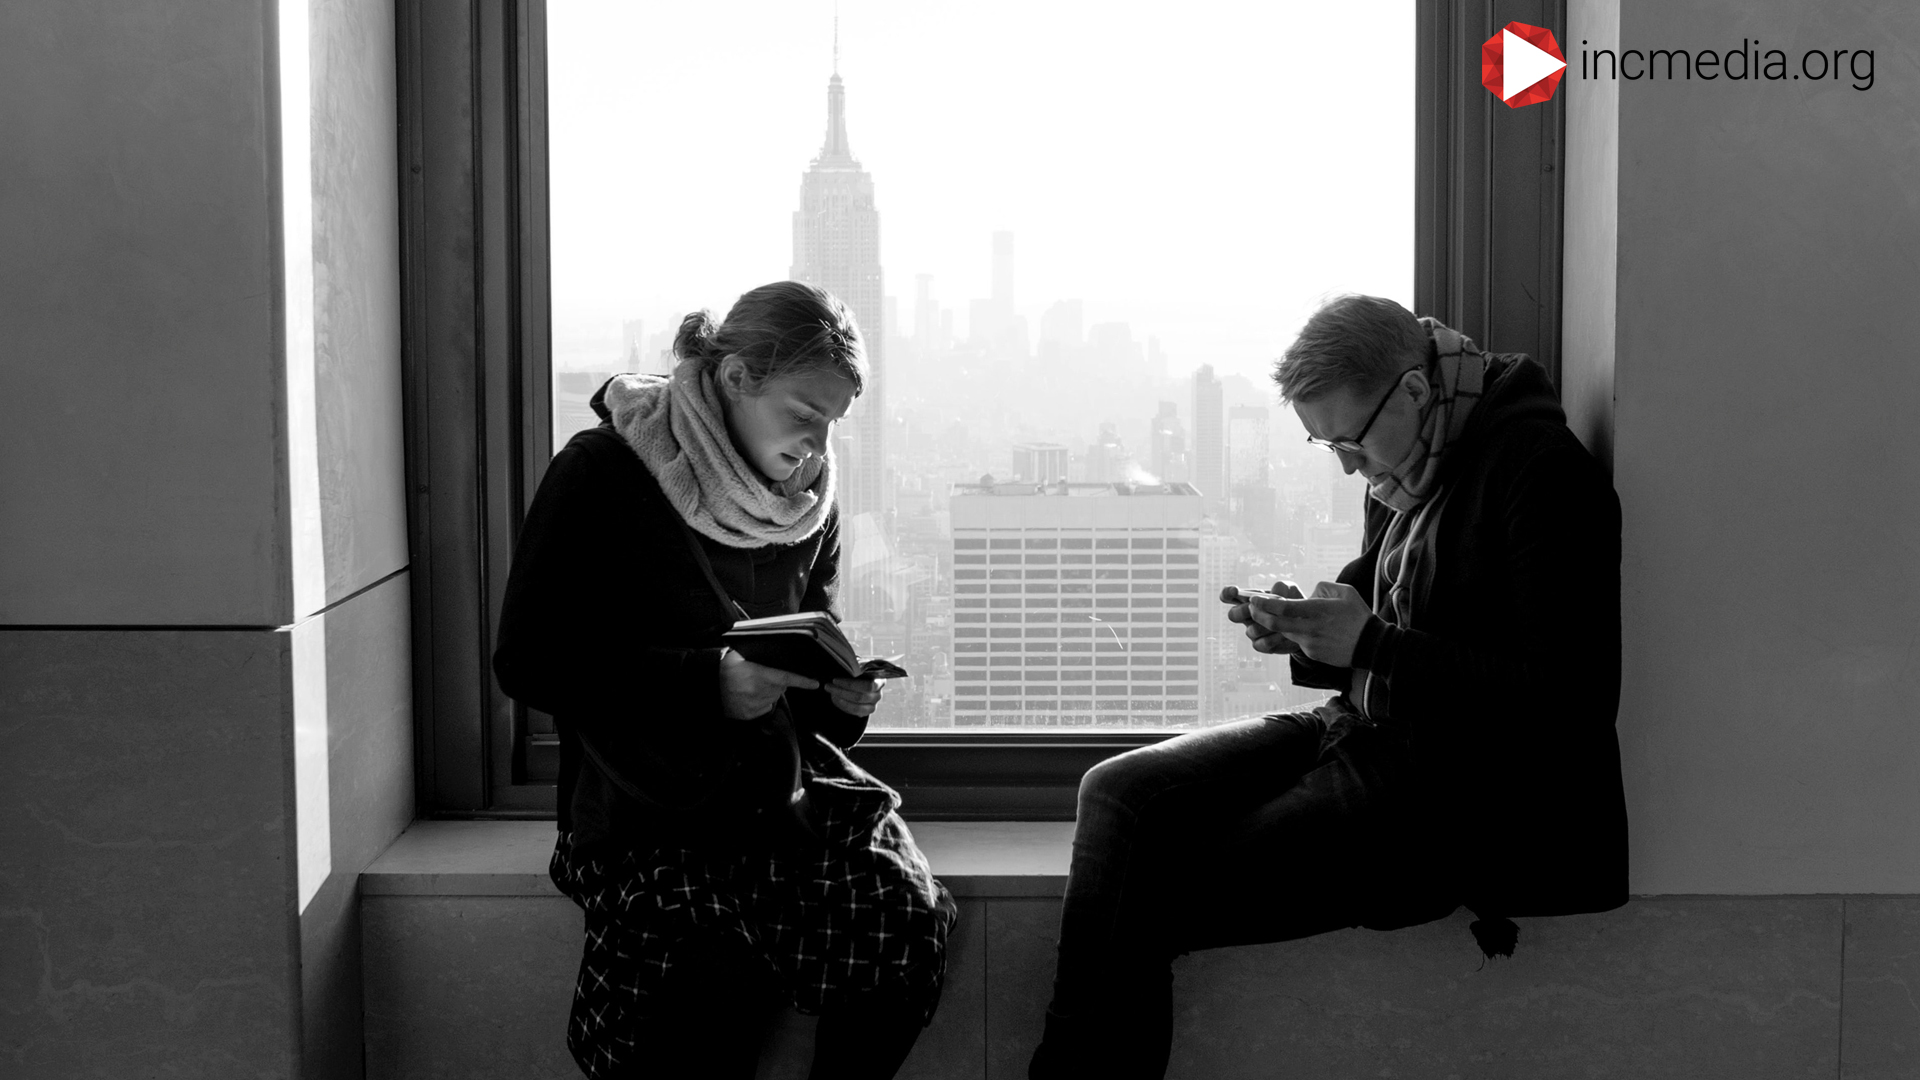 Two people at the window staring at their phones